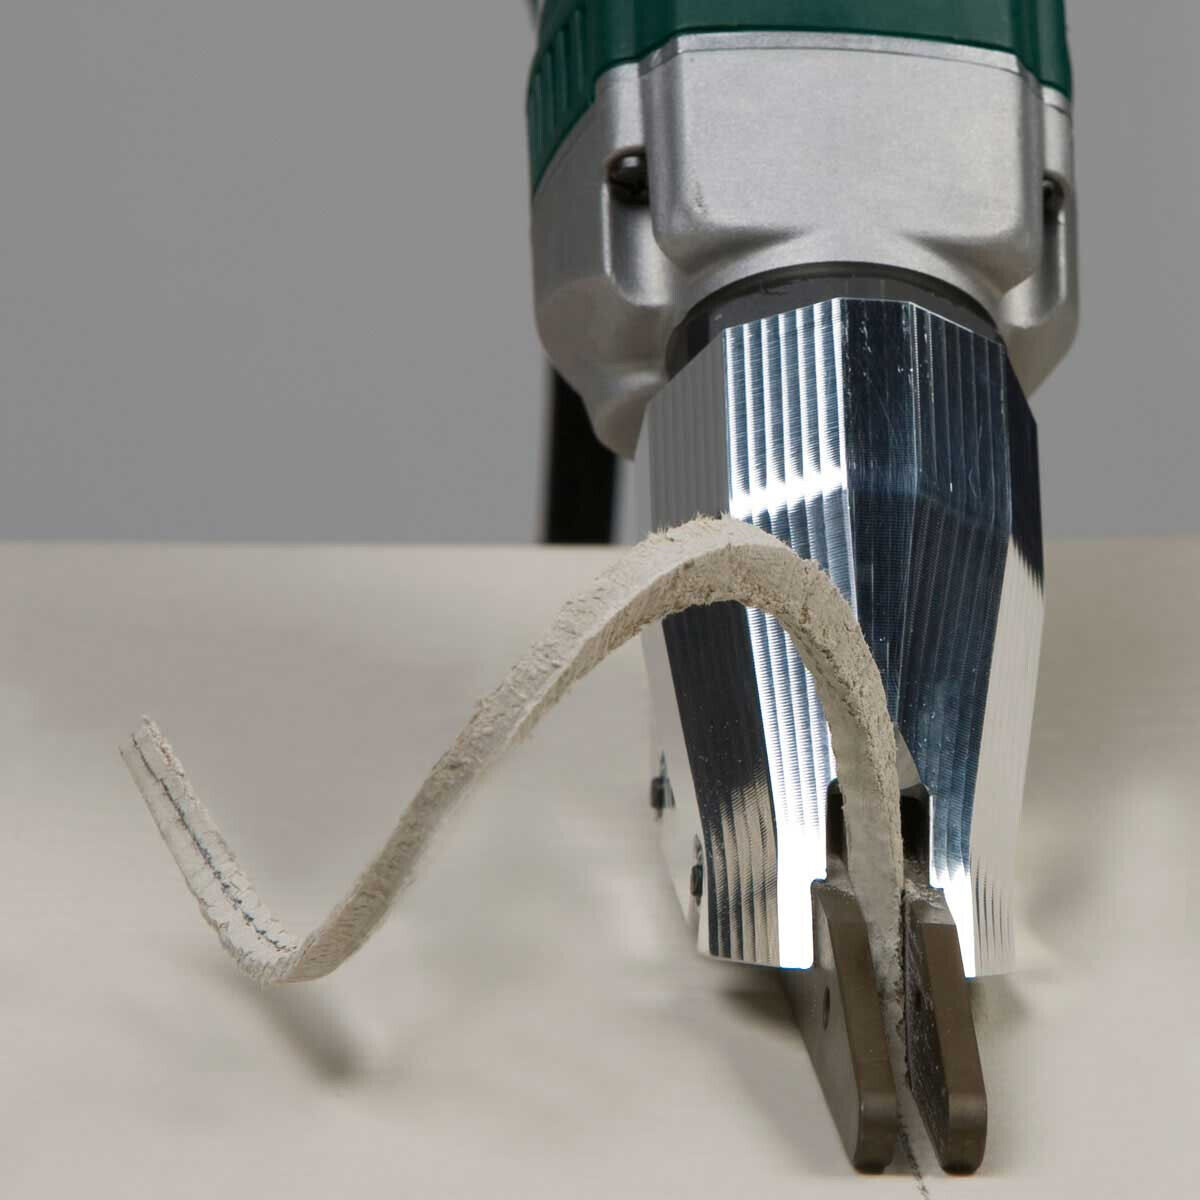 Looking for the quickest and cleanest way to cut backer board, Razor backer slices through Hardibacker super fast, easy and straight; cuts great curves too